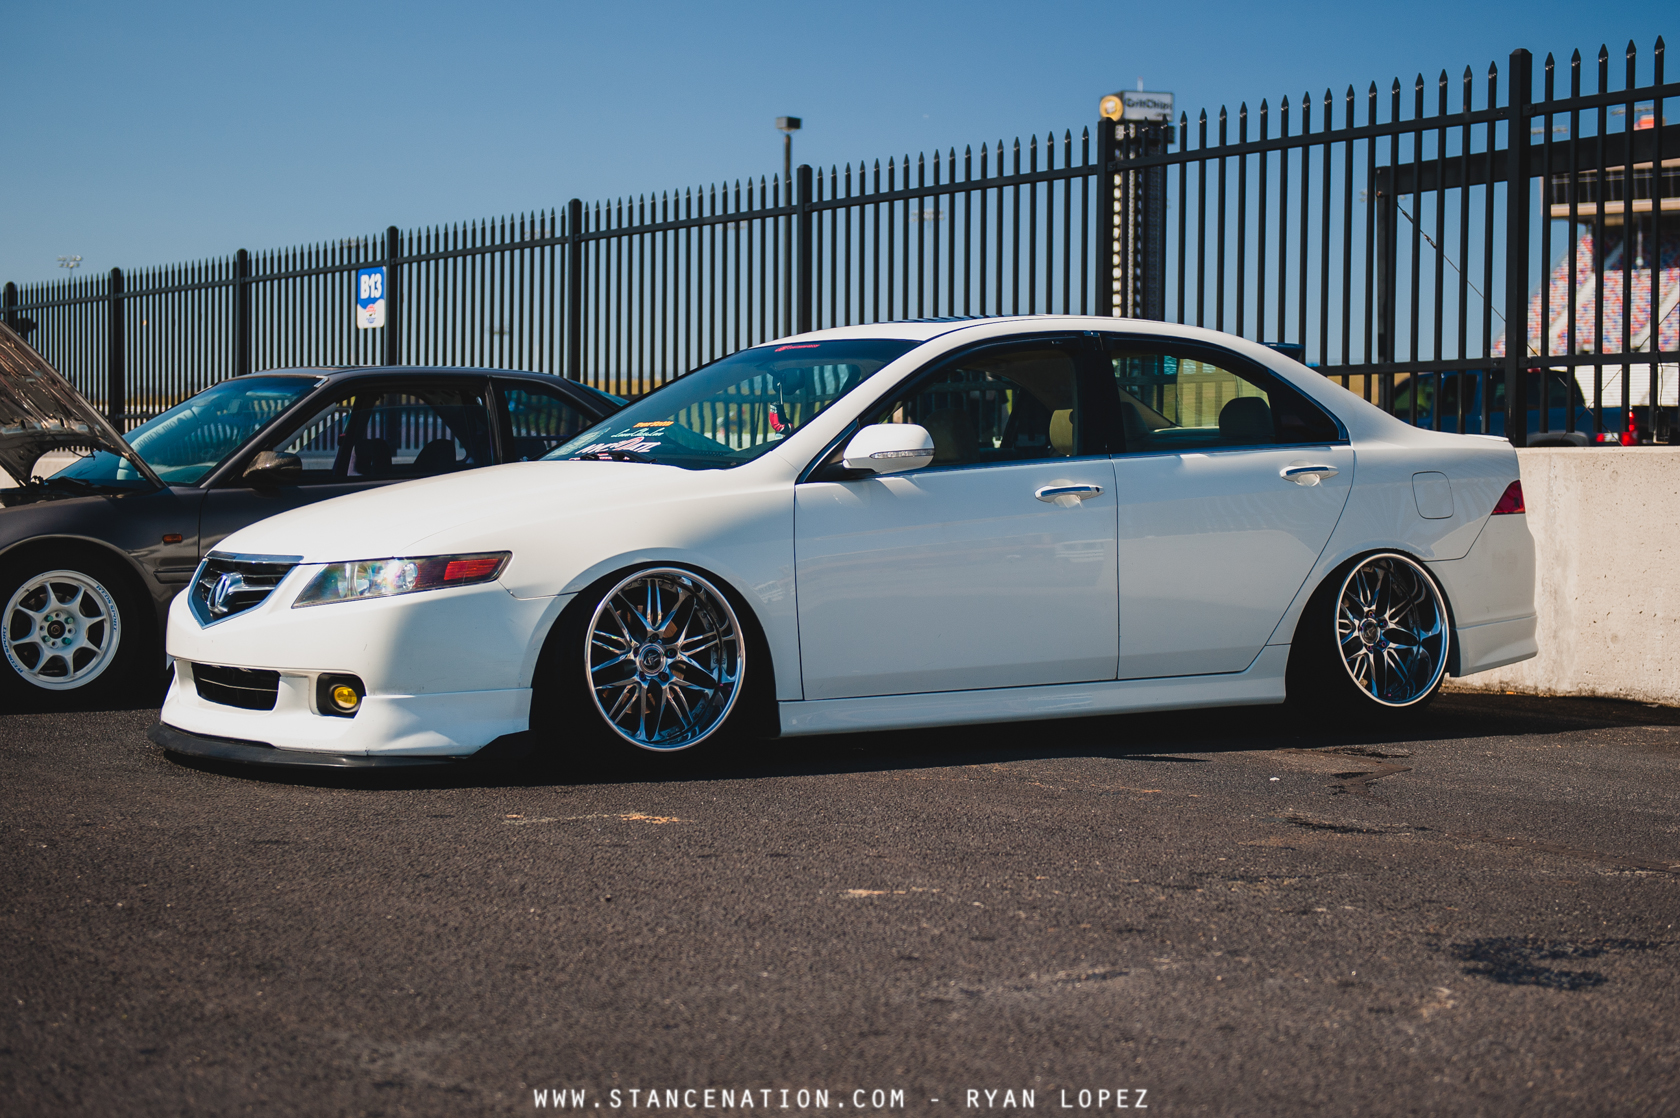 Import alliance summer meet 2015 photo coverage stancenation - Import Alliance 2014 Photo Coverage 198